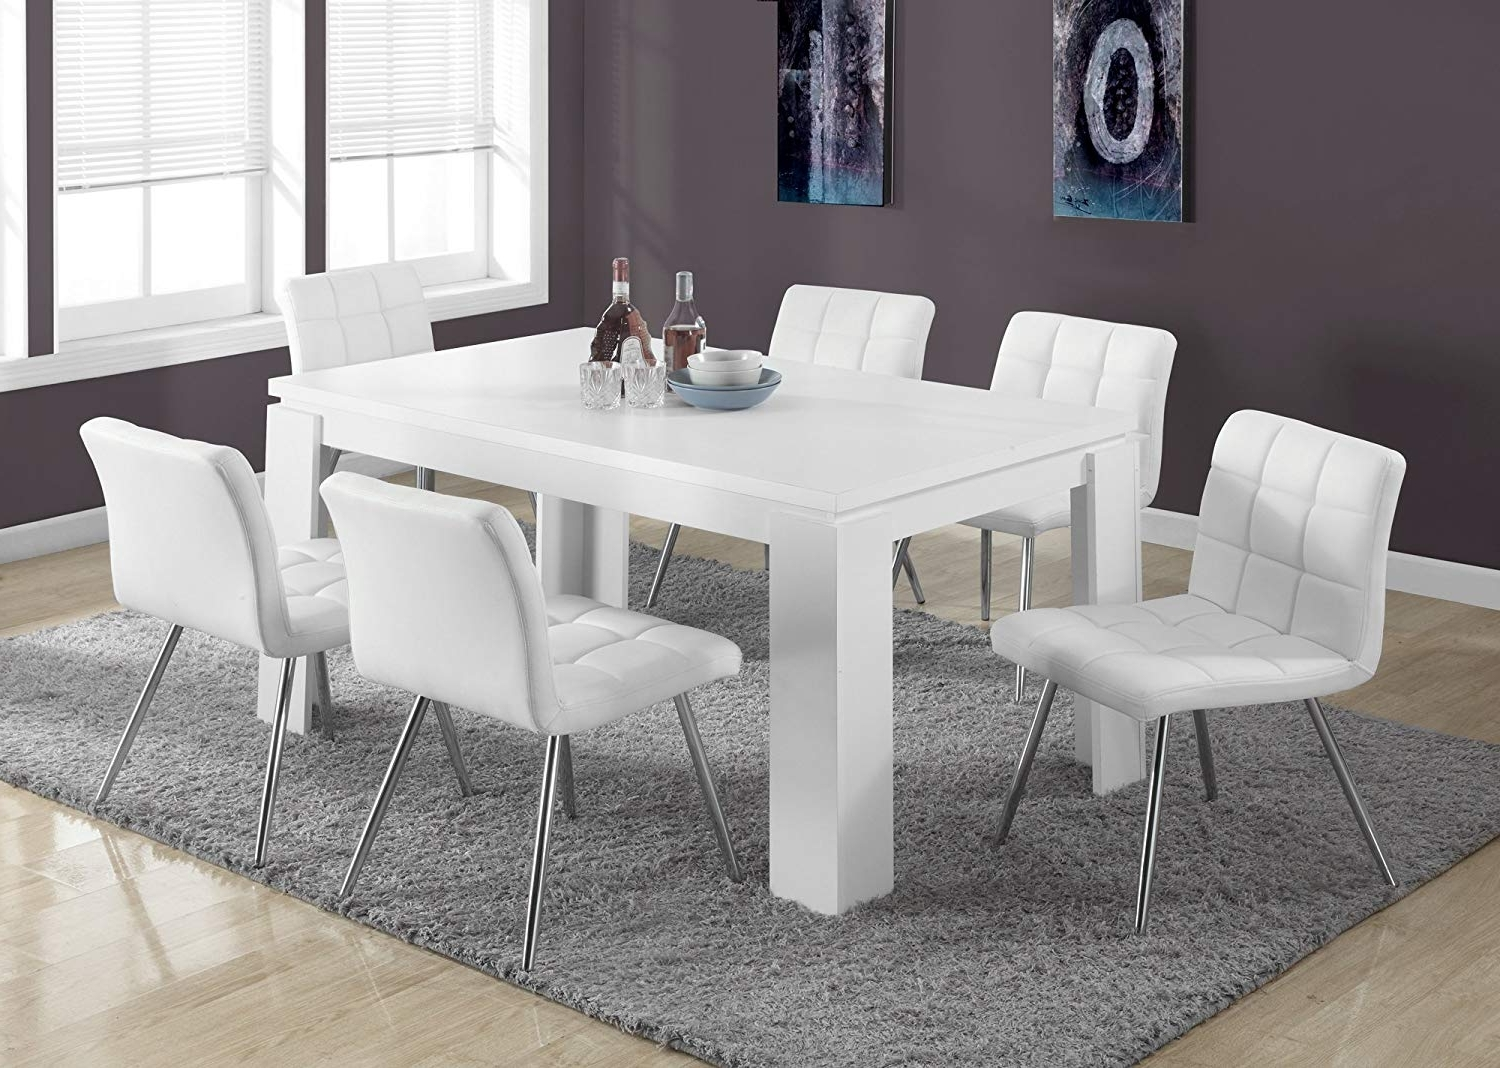 Amazon – Monarch Specialties I 1056, Dining Table, White Hollow With Well Liked Next White Dining Tables (View 1 of 25)